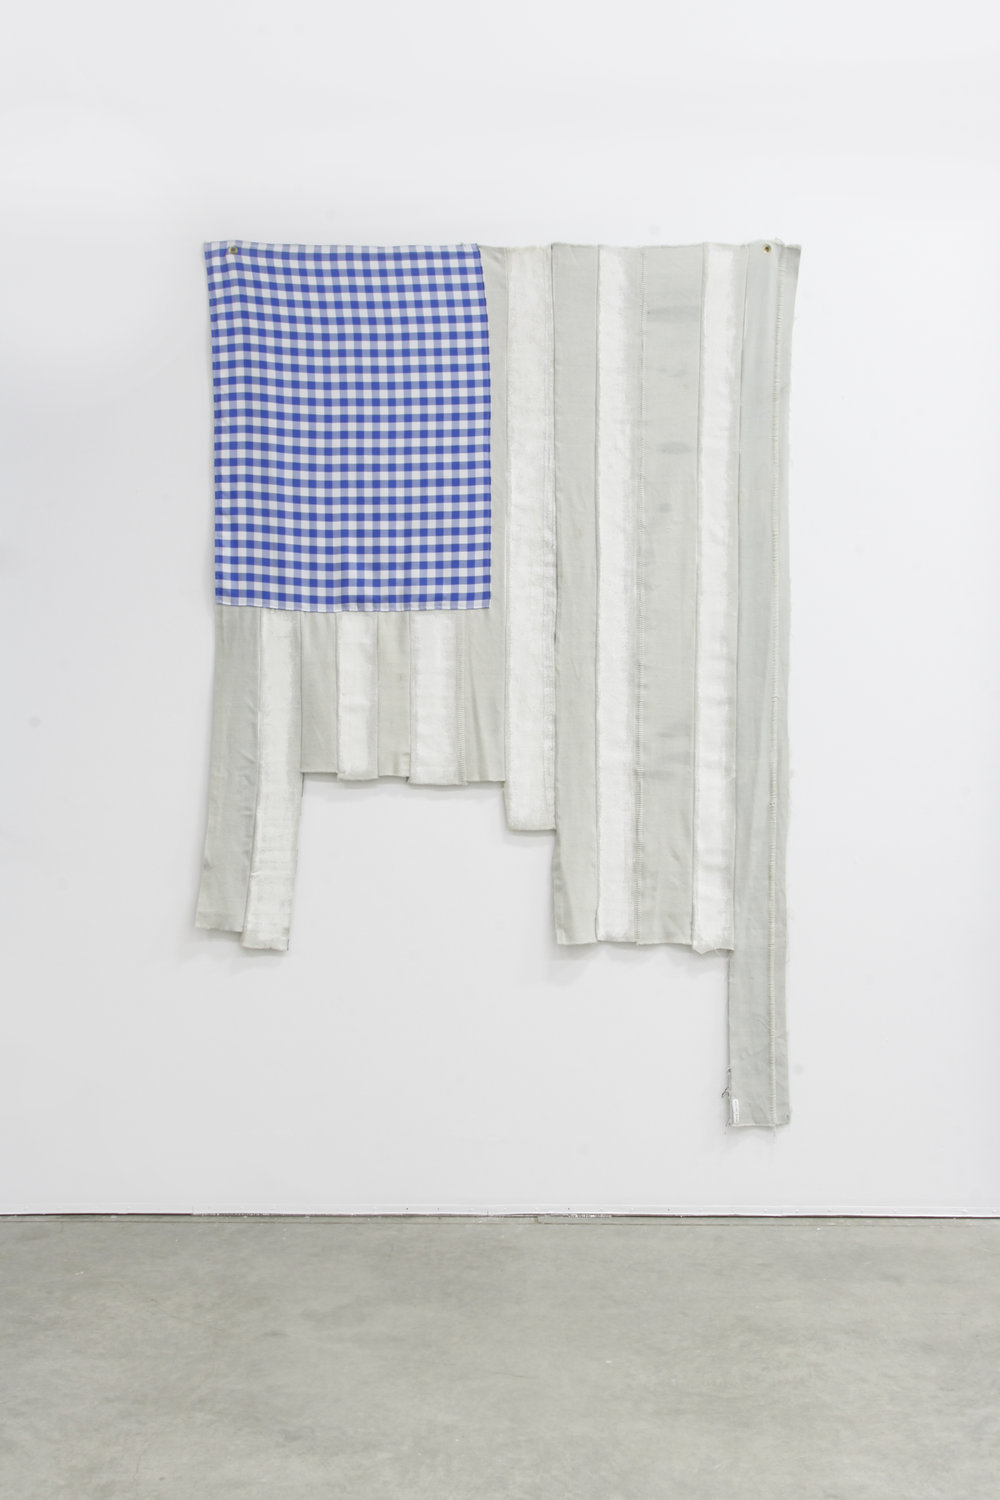 Don't Let My Glad Expression Give You The Wrong Impression (After Jasper Johns), 2015  Dutch Boy House Paint, on Pendleton Wool Selvage, Gingham Table Cloth  108 x 78 in  Photo: Jenna Gard